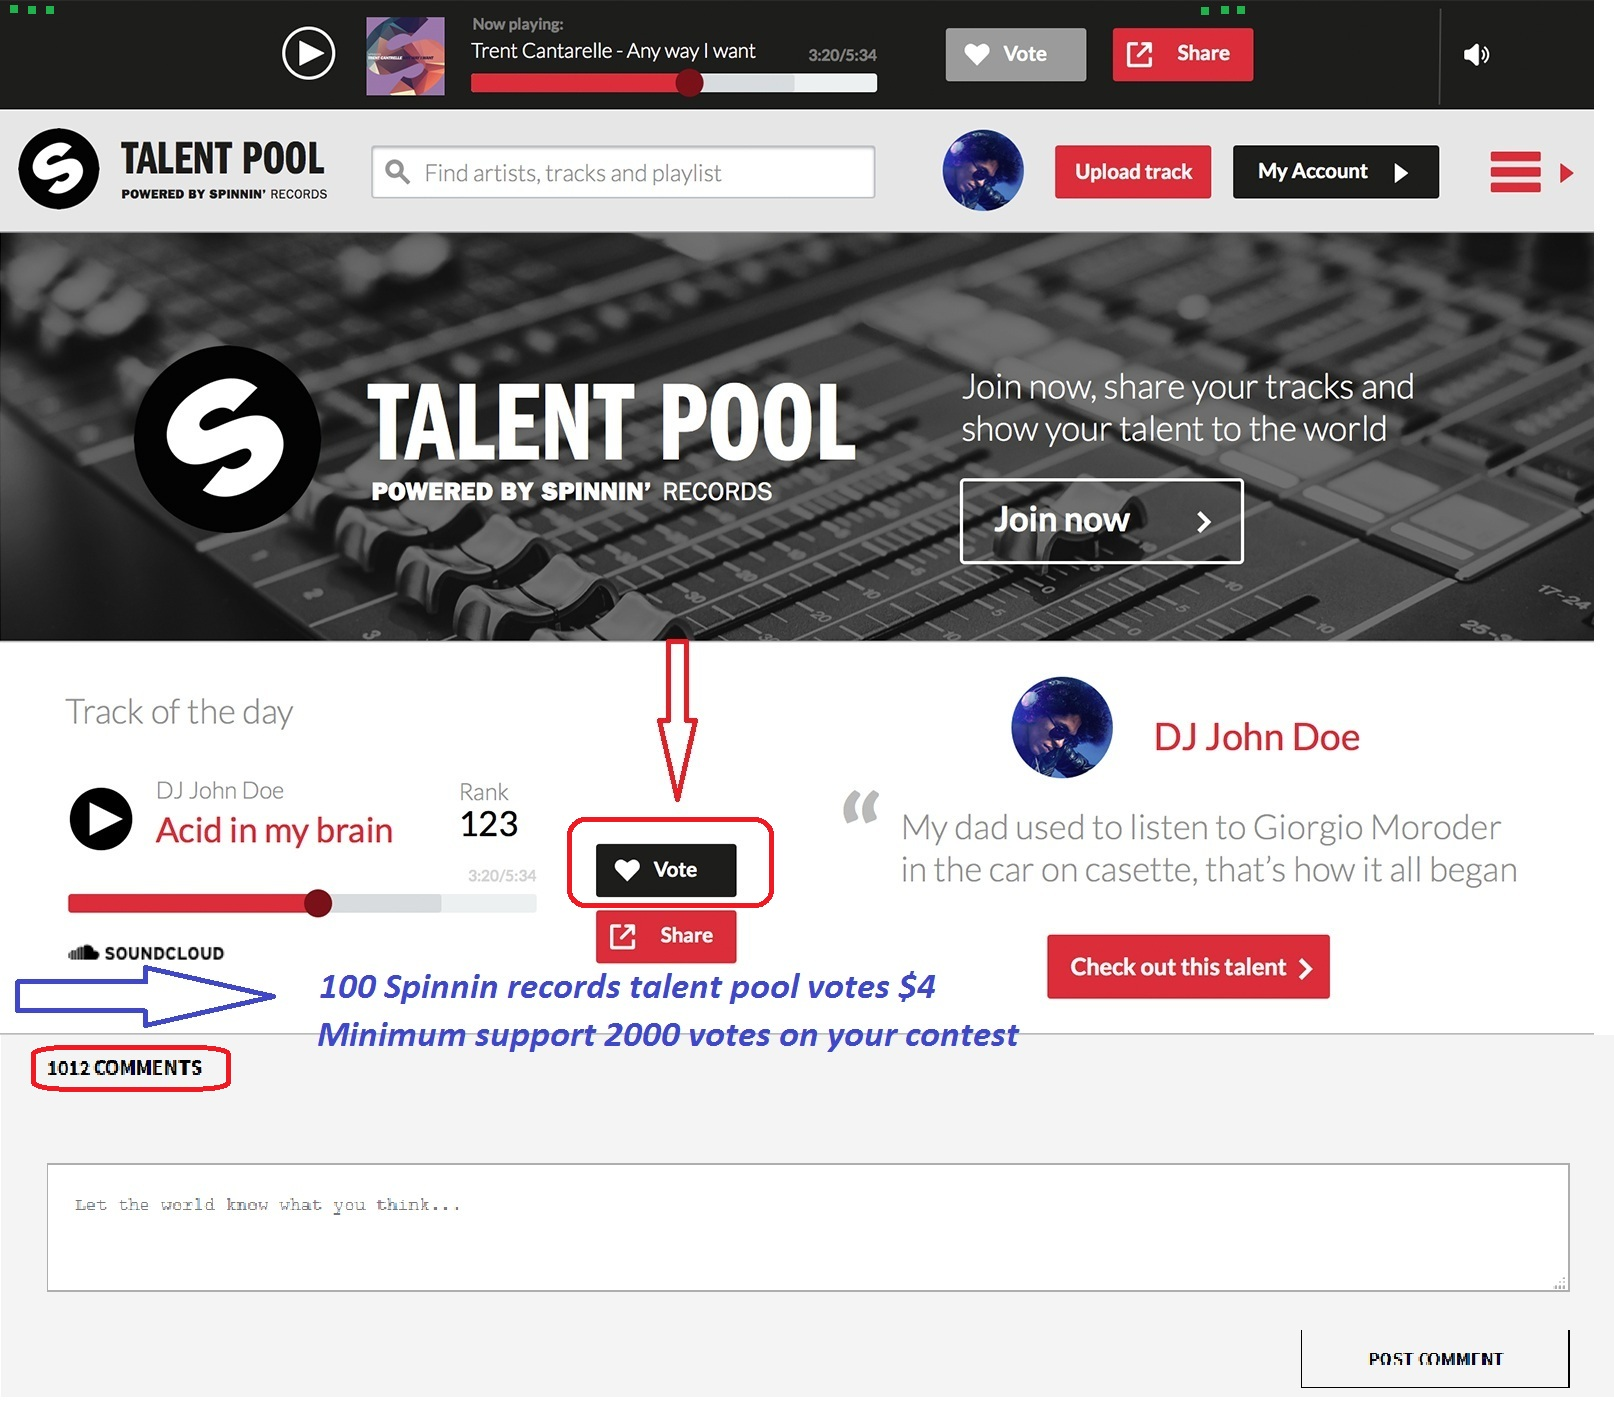 Bring improve 100 spinning records talent pool votes on your spinning records track